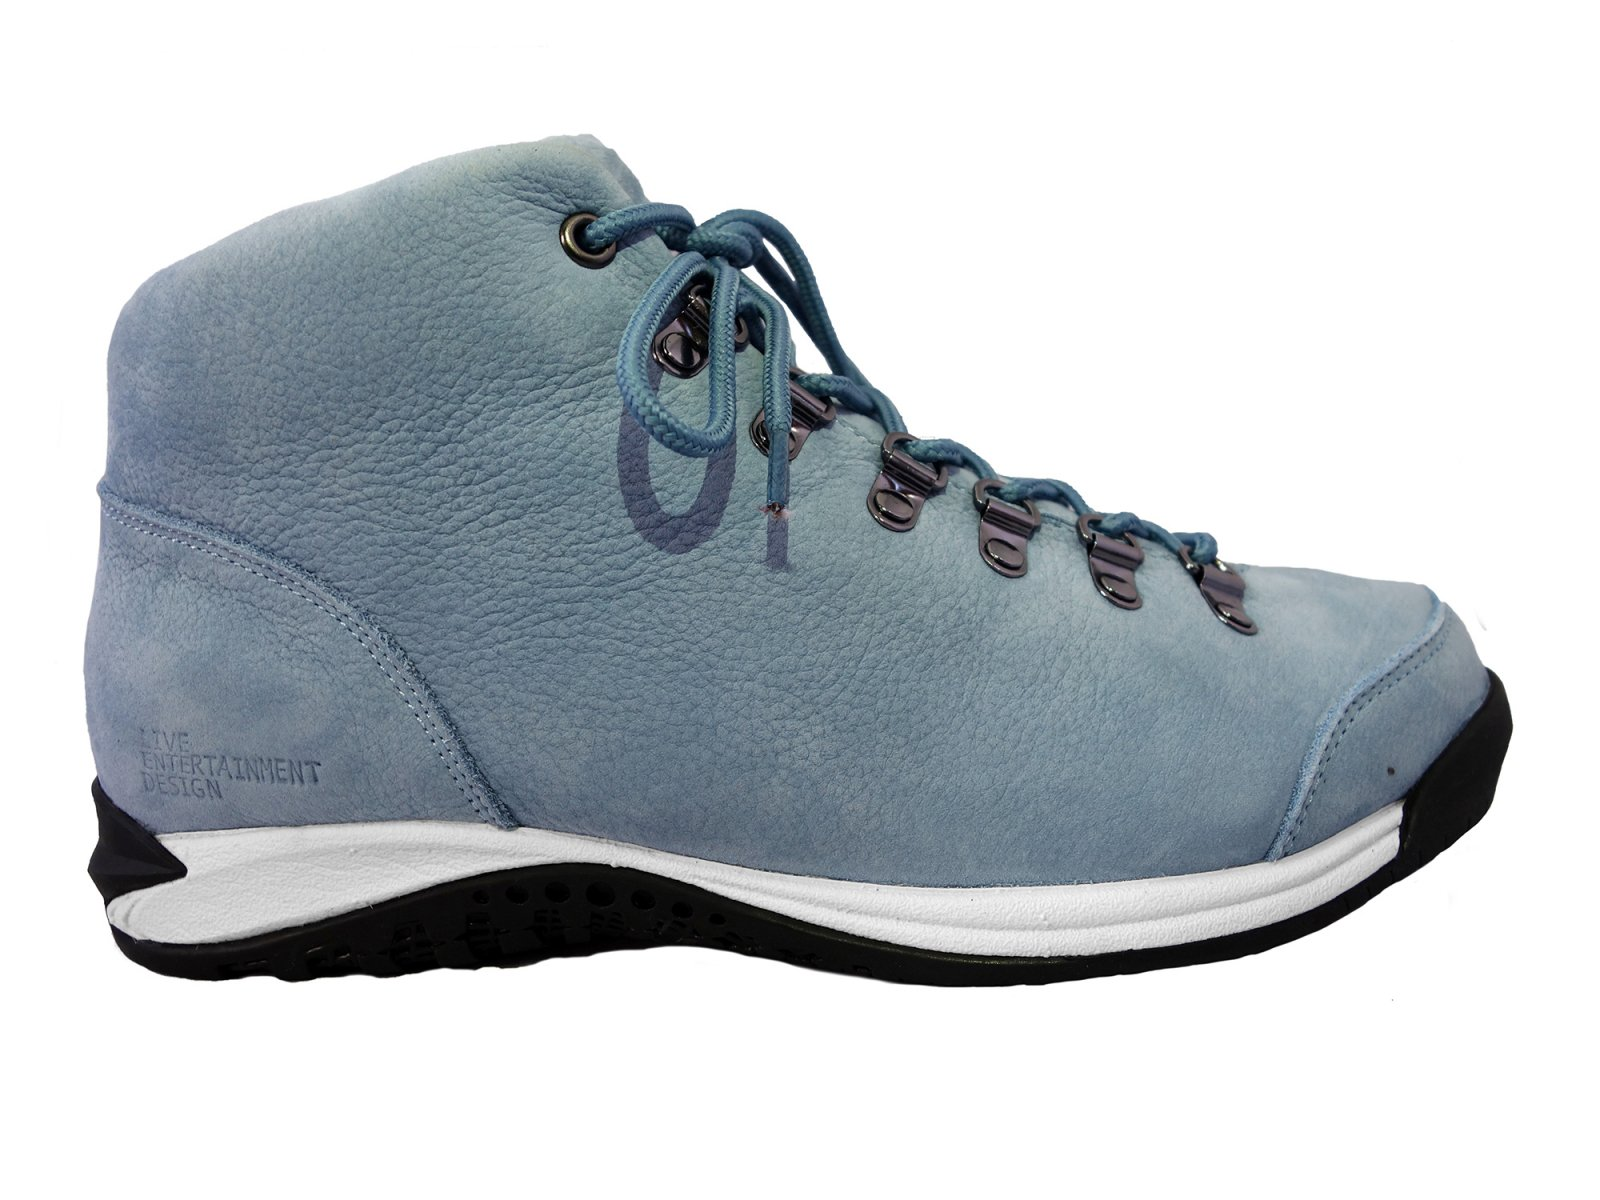 【LIVE ENTERTAINMENT DESIGN】Vibram sneaker boots  (Shrink nubuck leather Light blue)